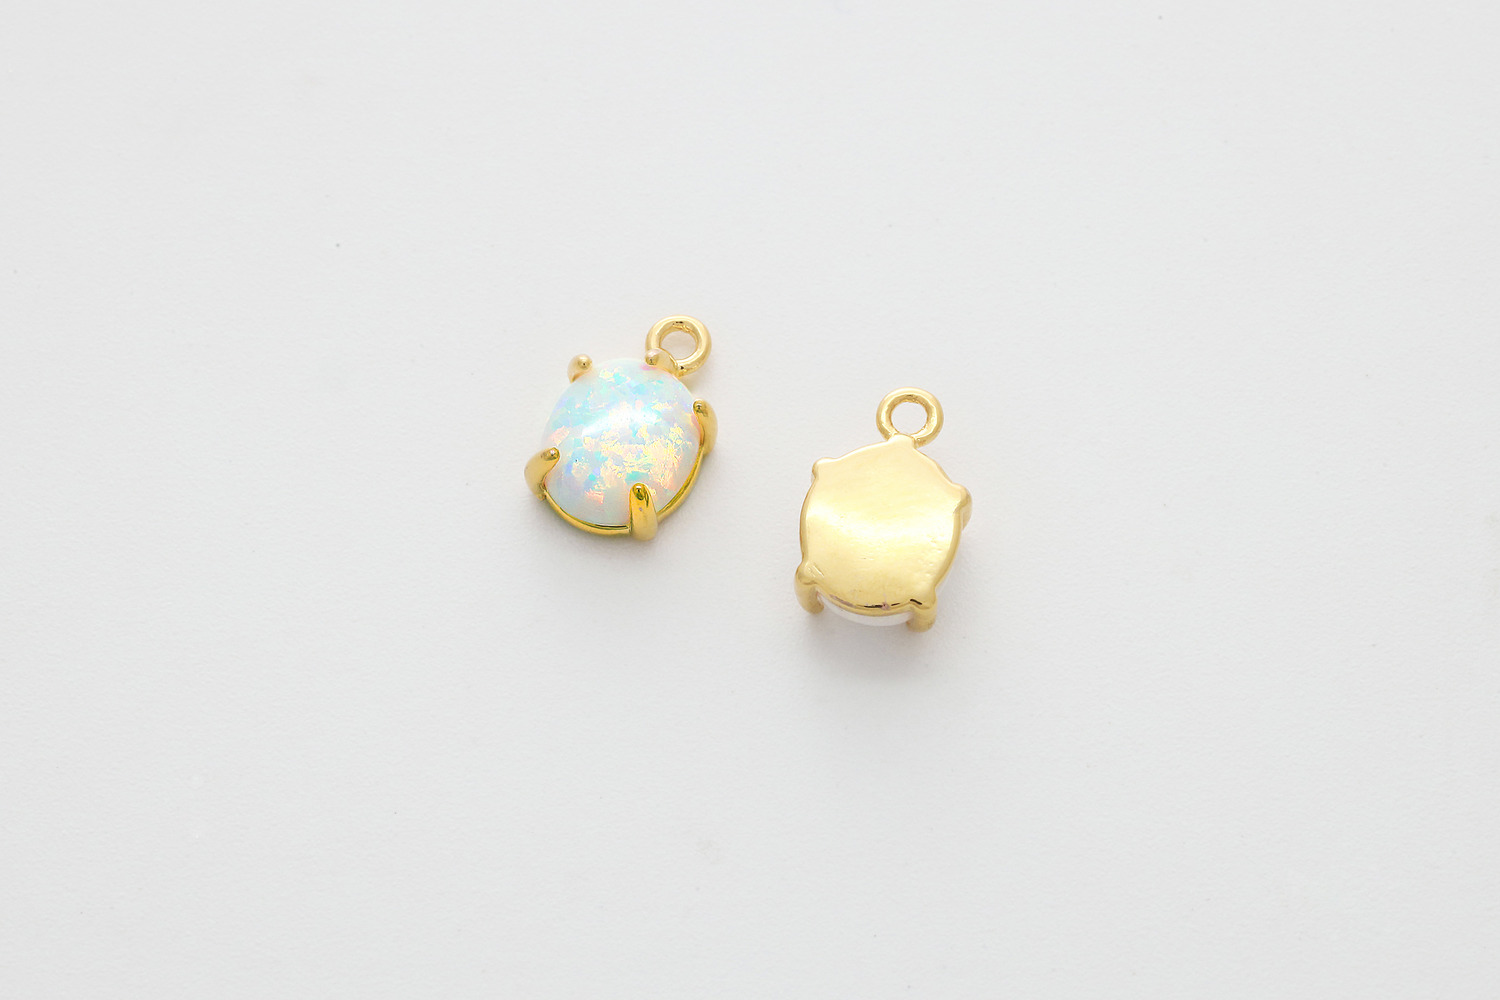 [N27-R12] White opal oval charm, Nickel free, Brass, Lab-created opal, Dainty charm, Necklace supplies, Jewelry makings, 1 piece